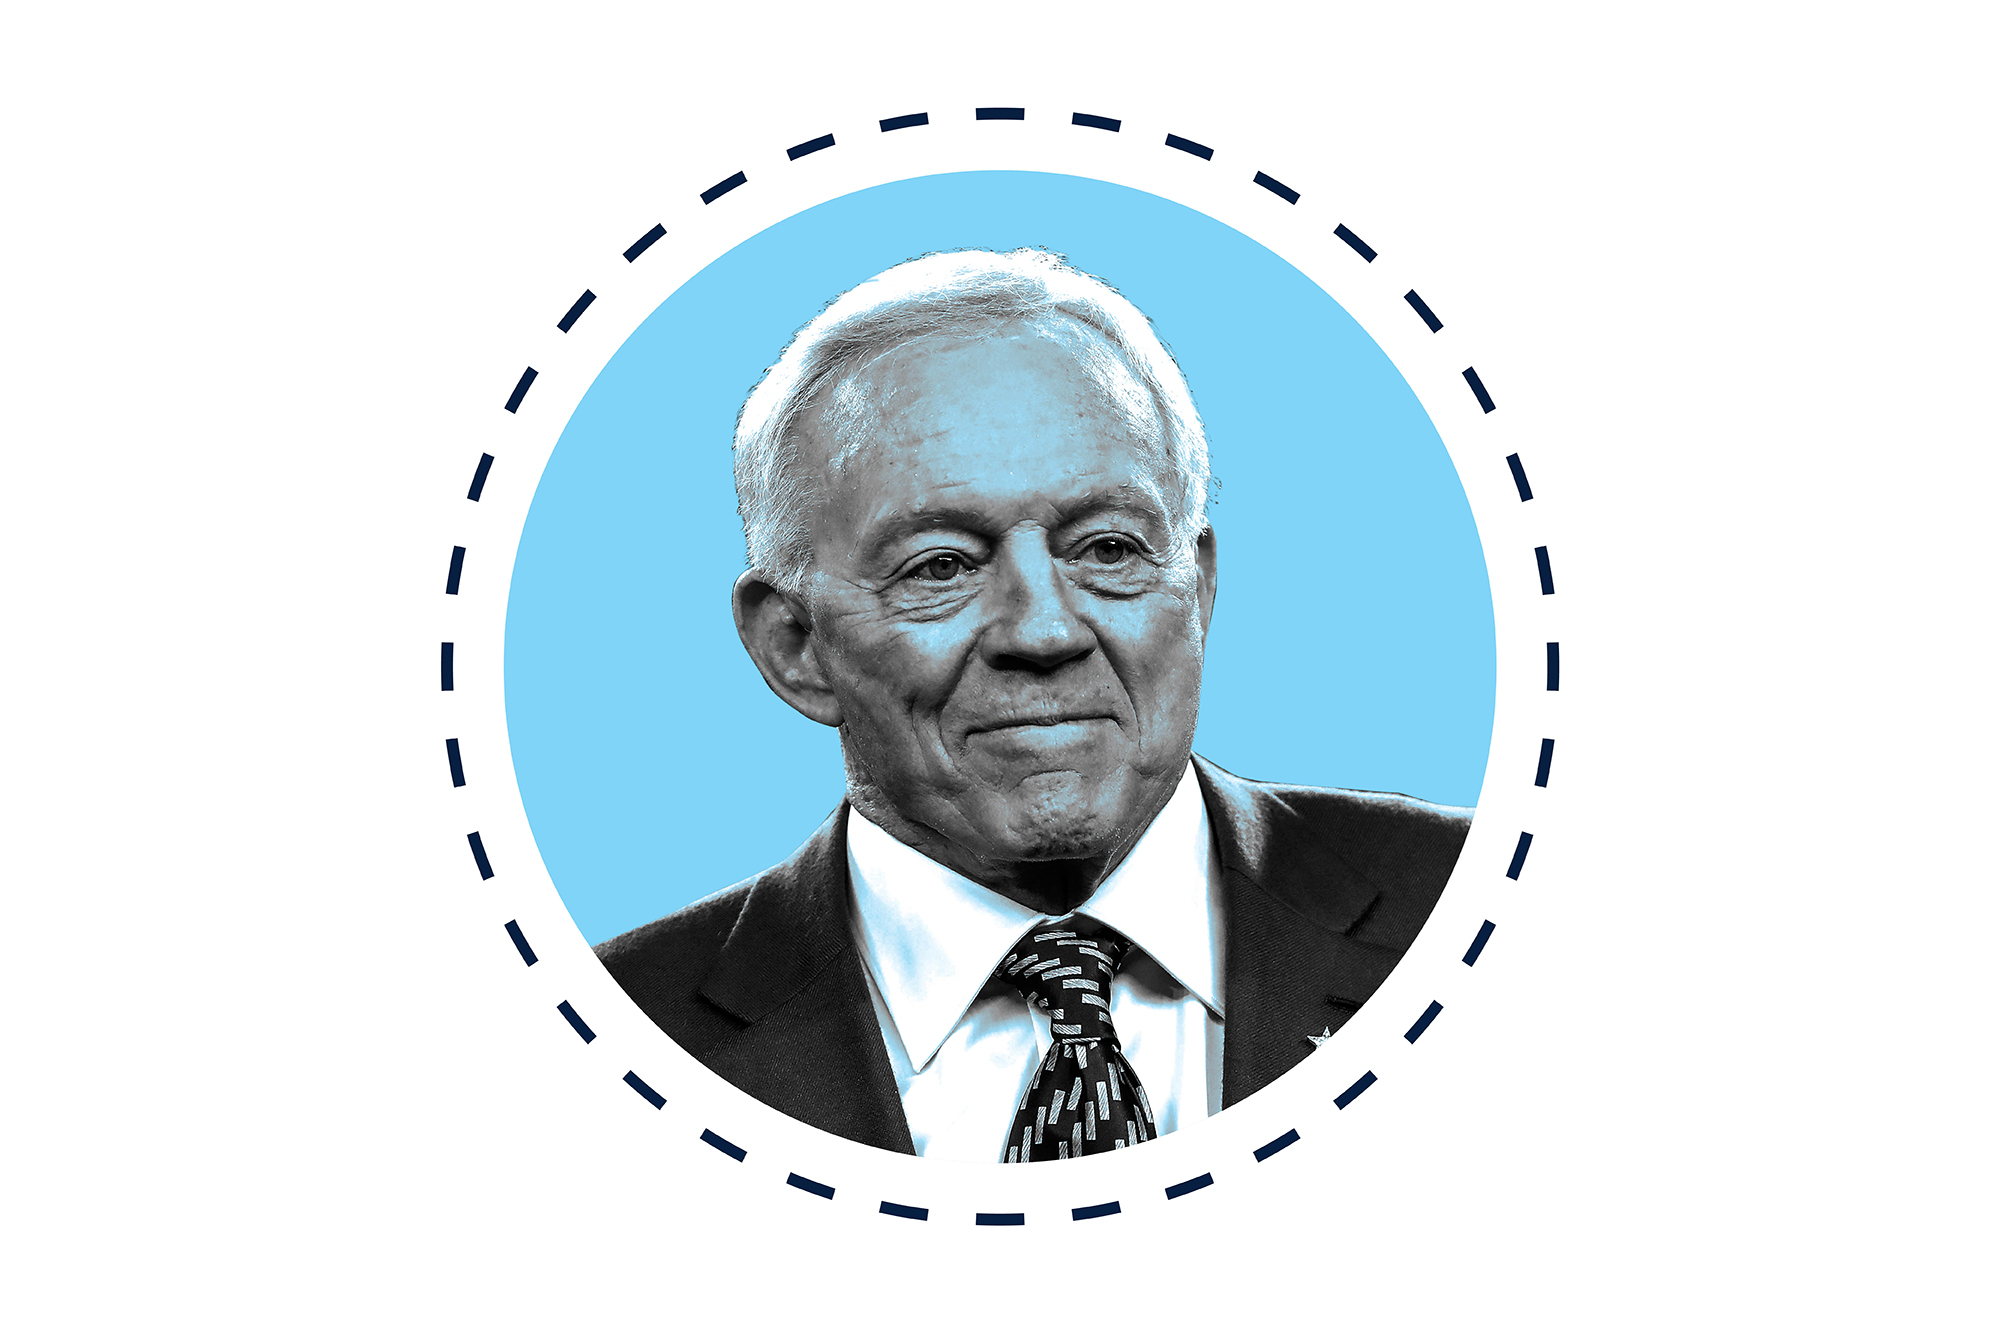 Dallas Cowboys Owner: Jerry Jones net worth, political donations